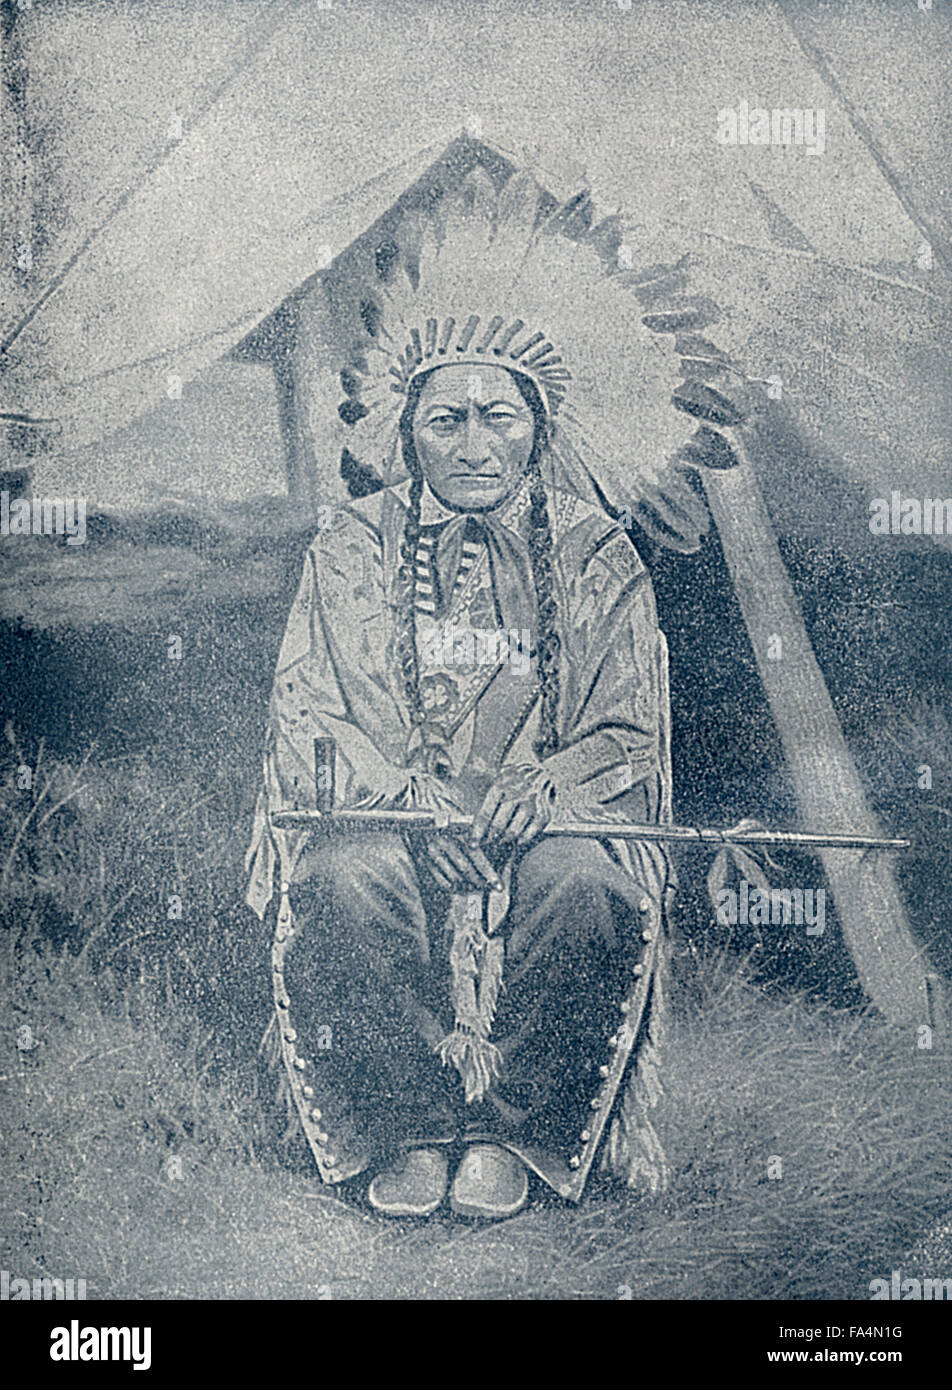 """Sitting Bull (1831-1890), Hunkpapa Lakota Chief, Book Photograph from """"Indian Horrors or Massacres of the Red Men"""", Stock Photo"""